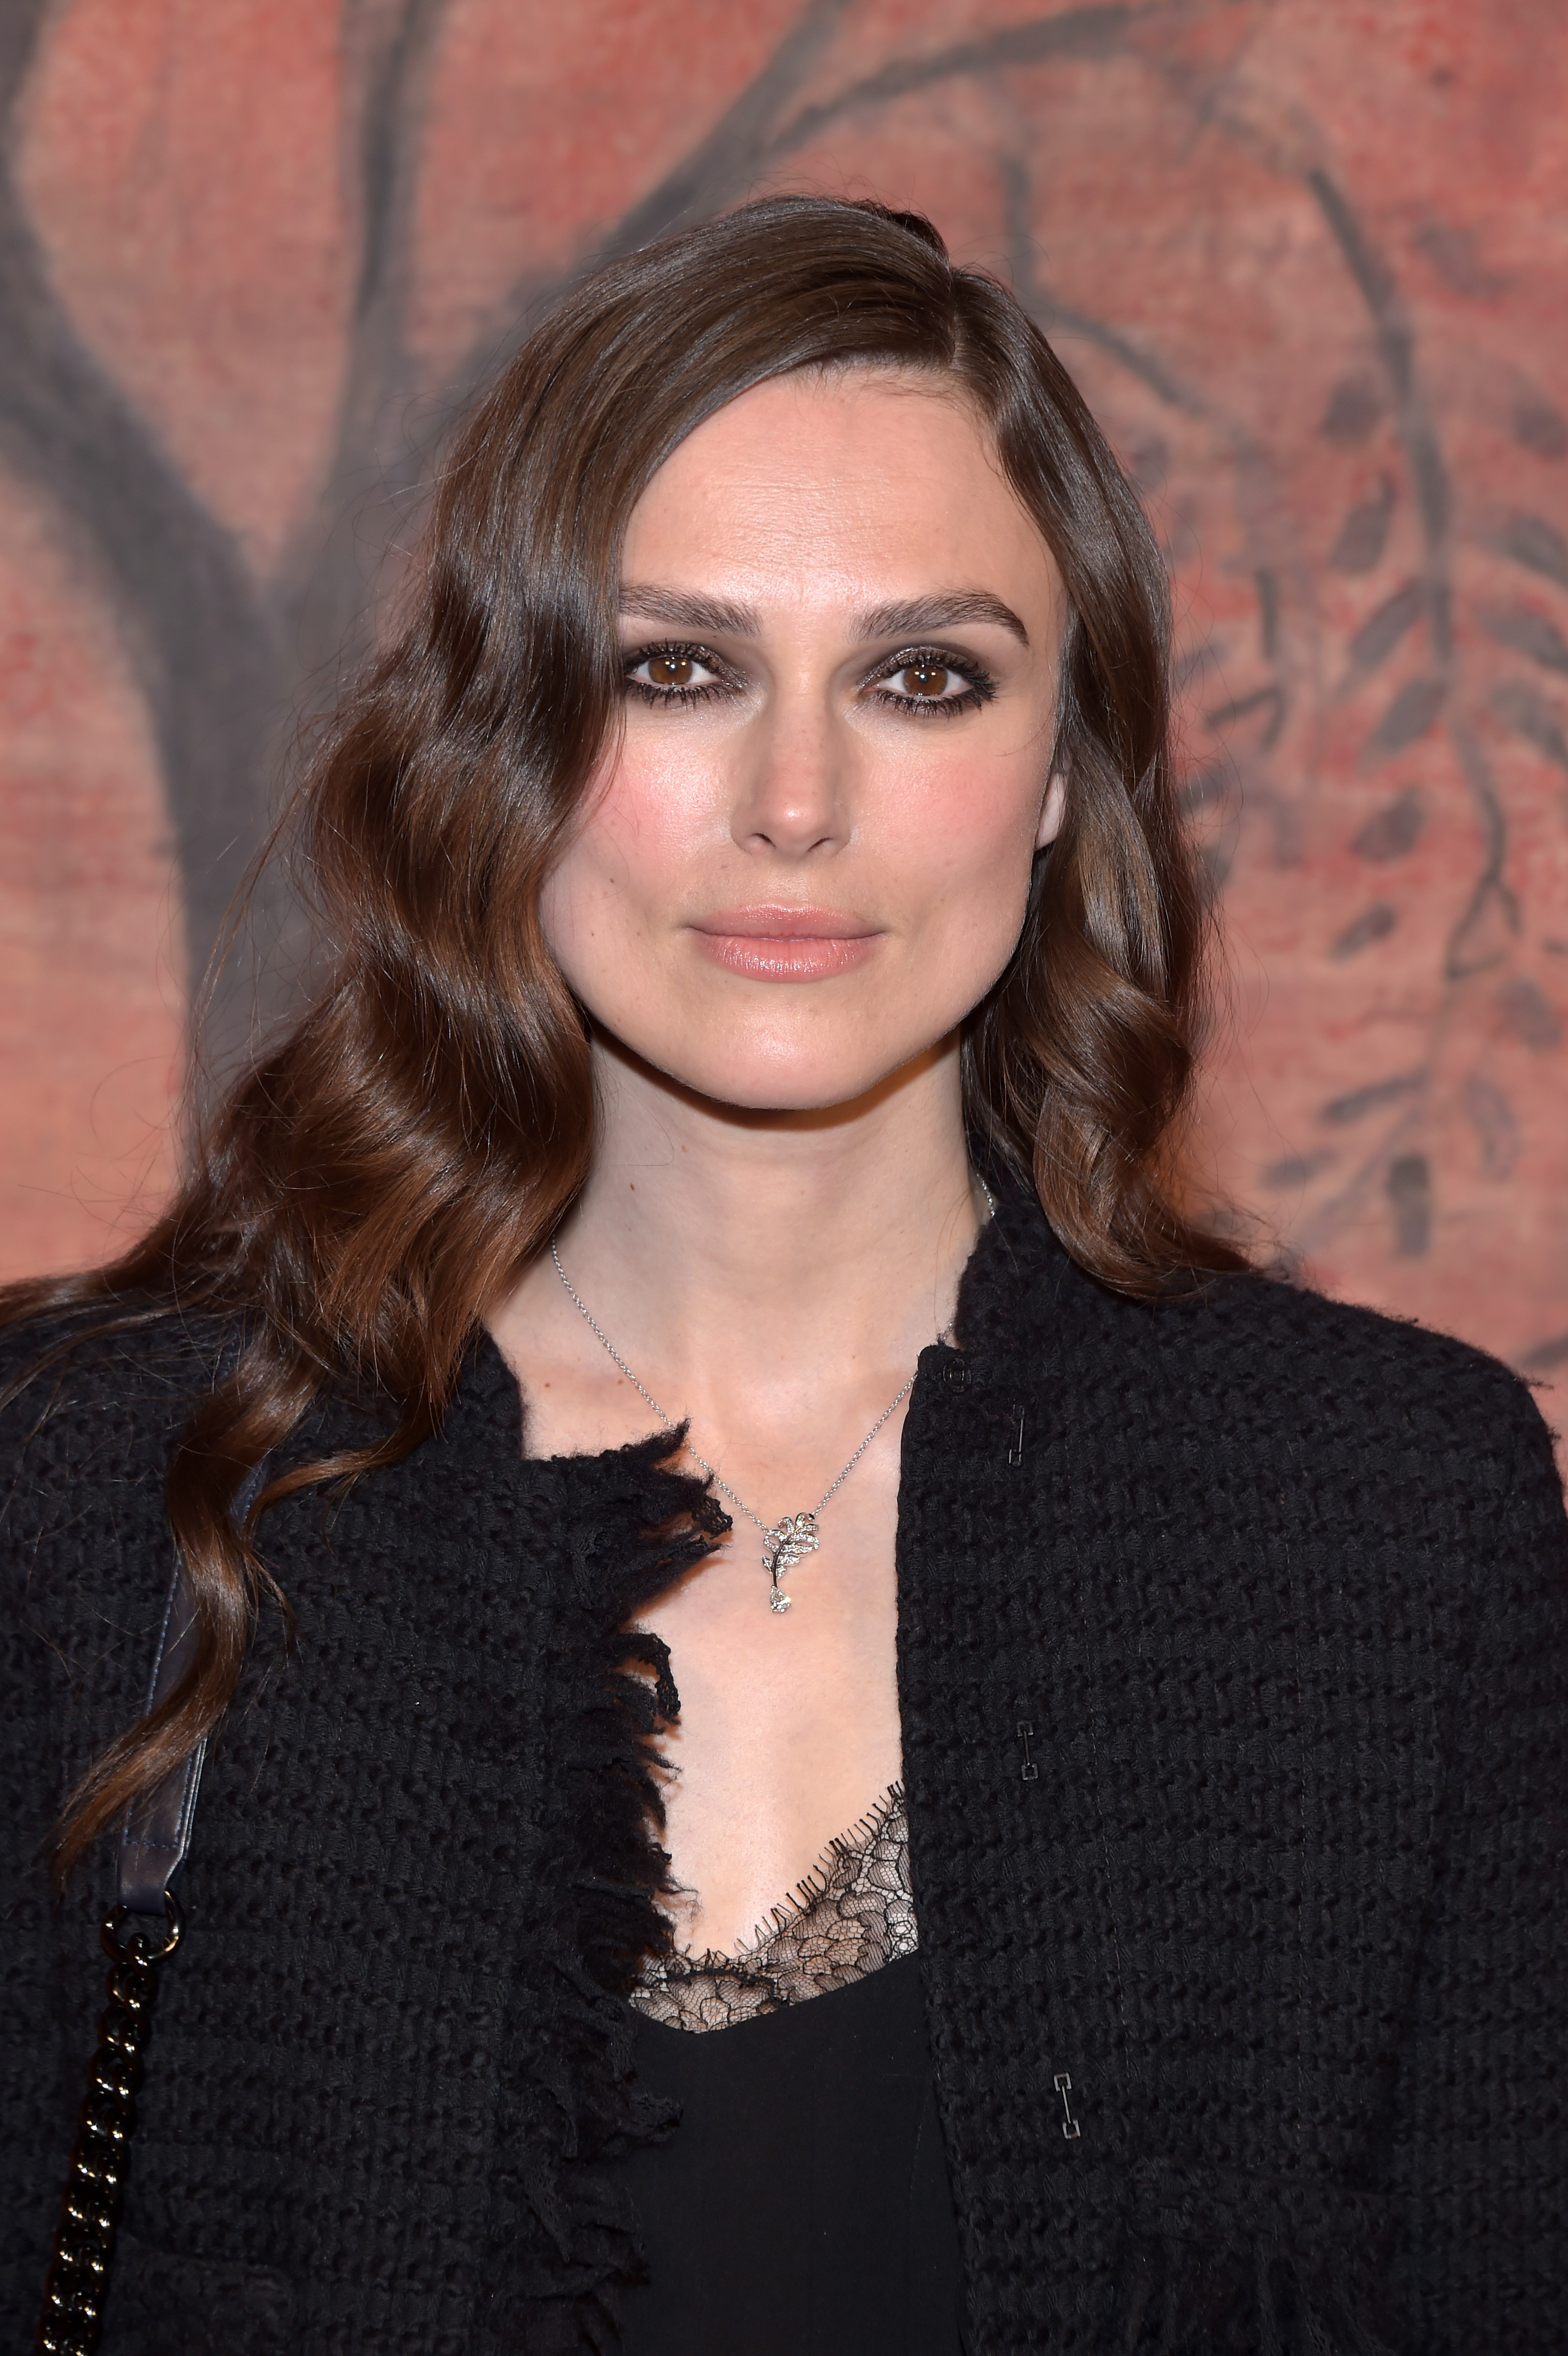 Keira Knightley attends the Photocall of the 'Chanel Cruise 2017/2018 Collection' at Grand Palais on May 3, 2017 in Paris, France.